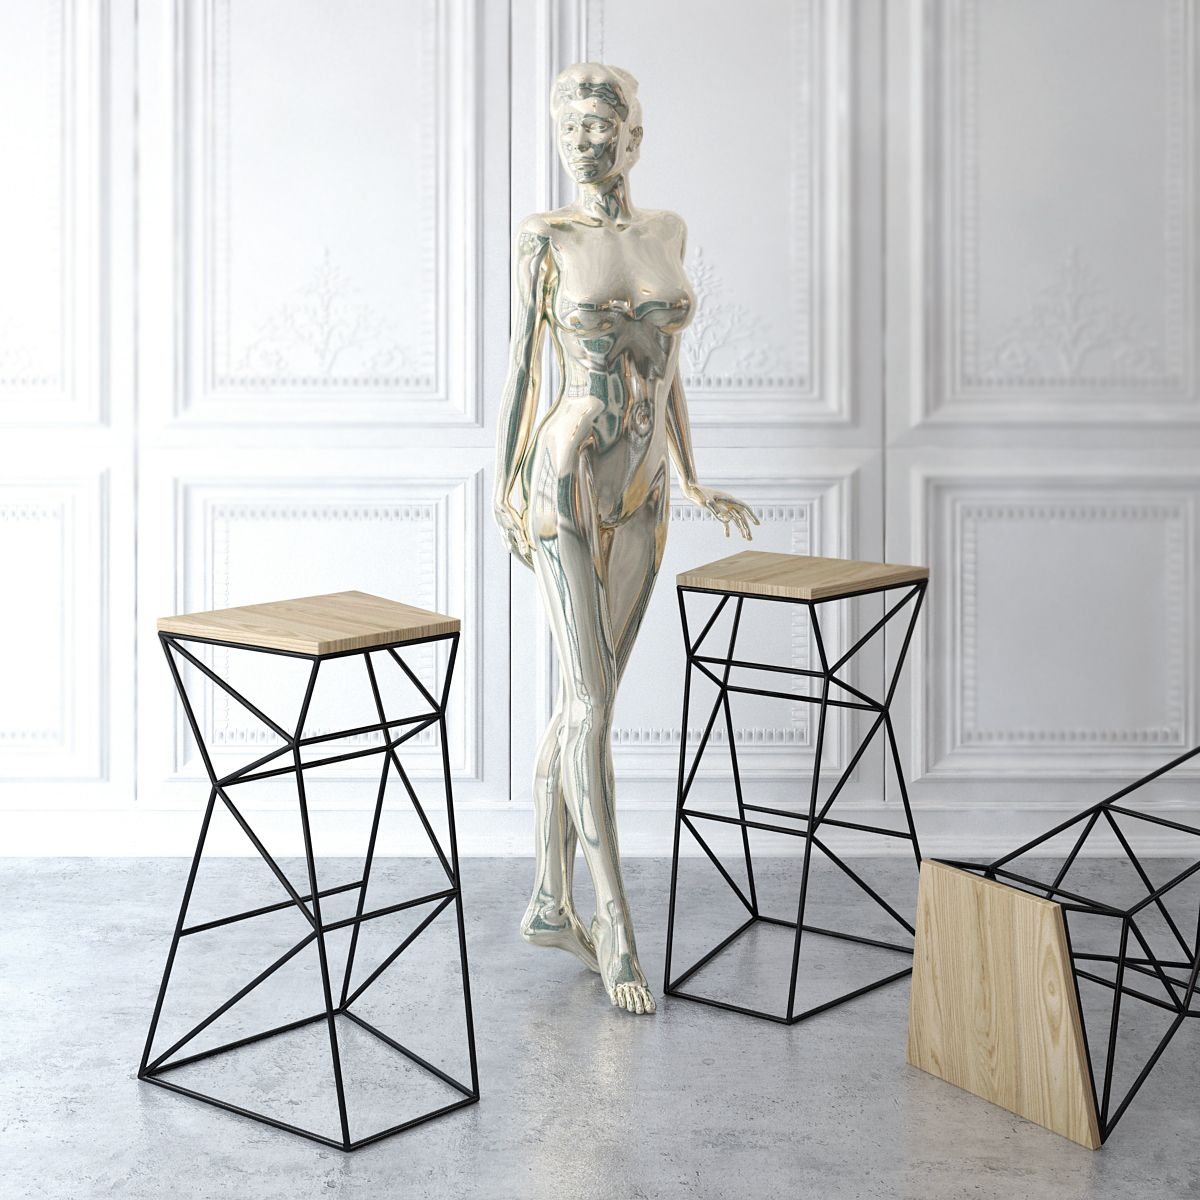 Support Design Furniture Pinterest Mobilier Tabouret Et